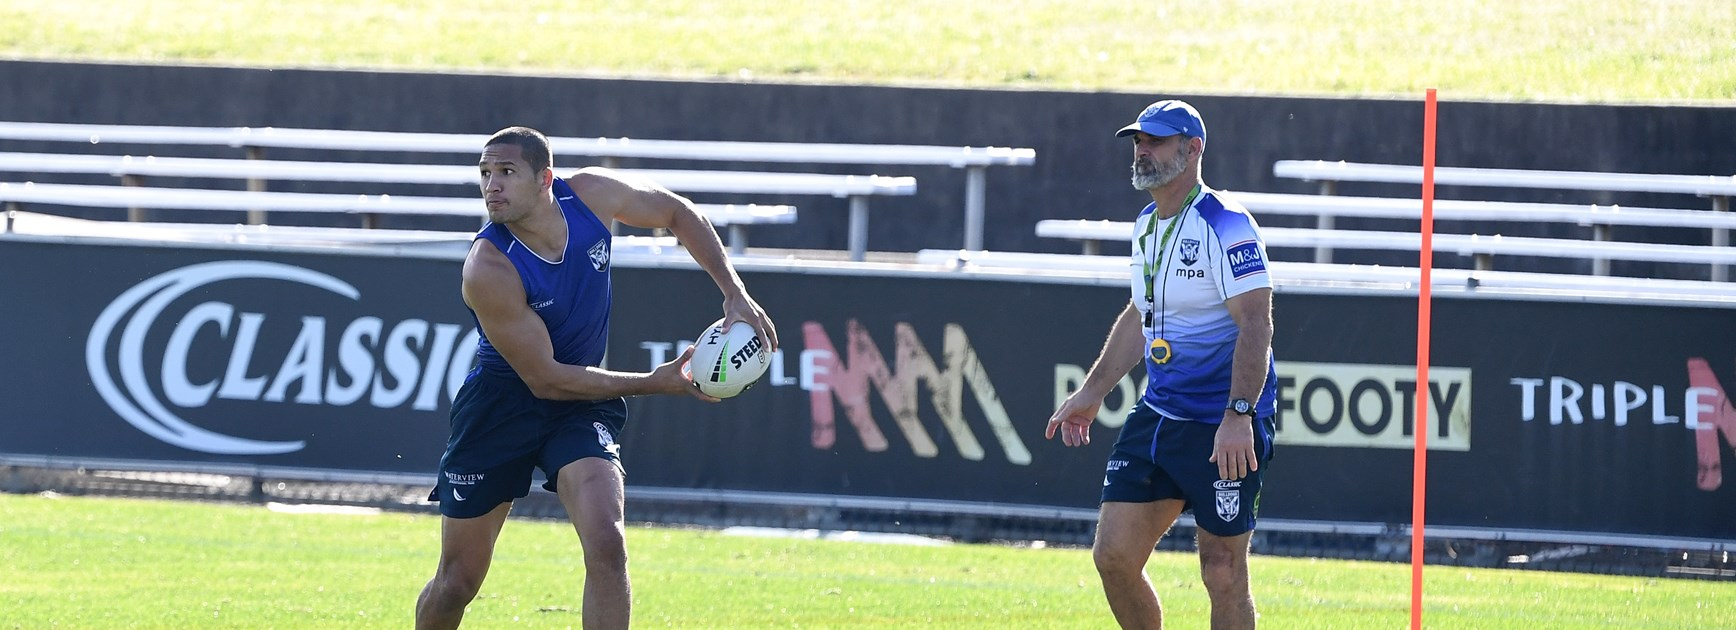 Fullback and forth: DWZ and Hopoate to share roles, says Pay